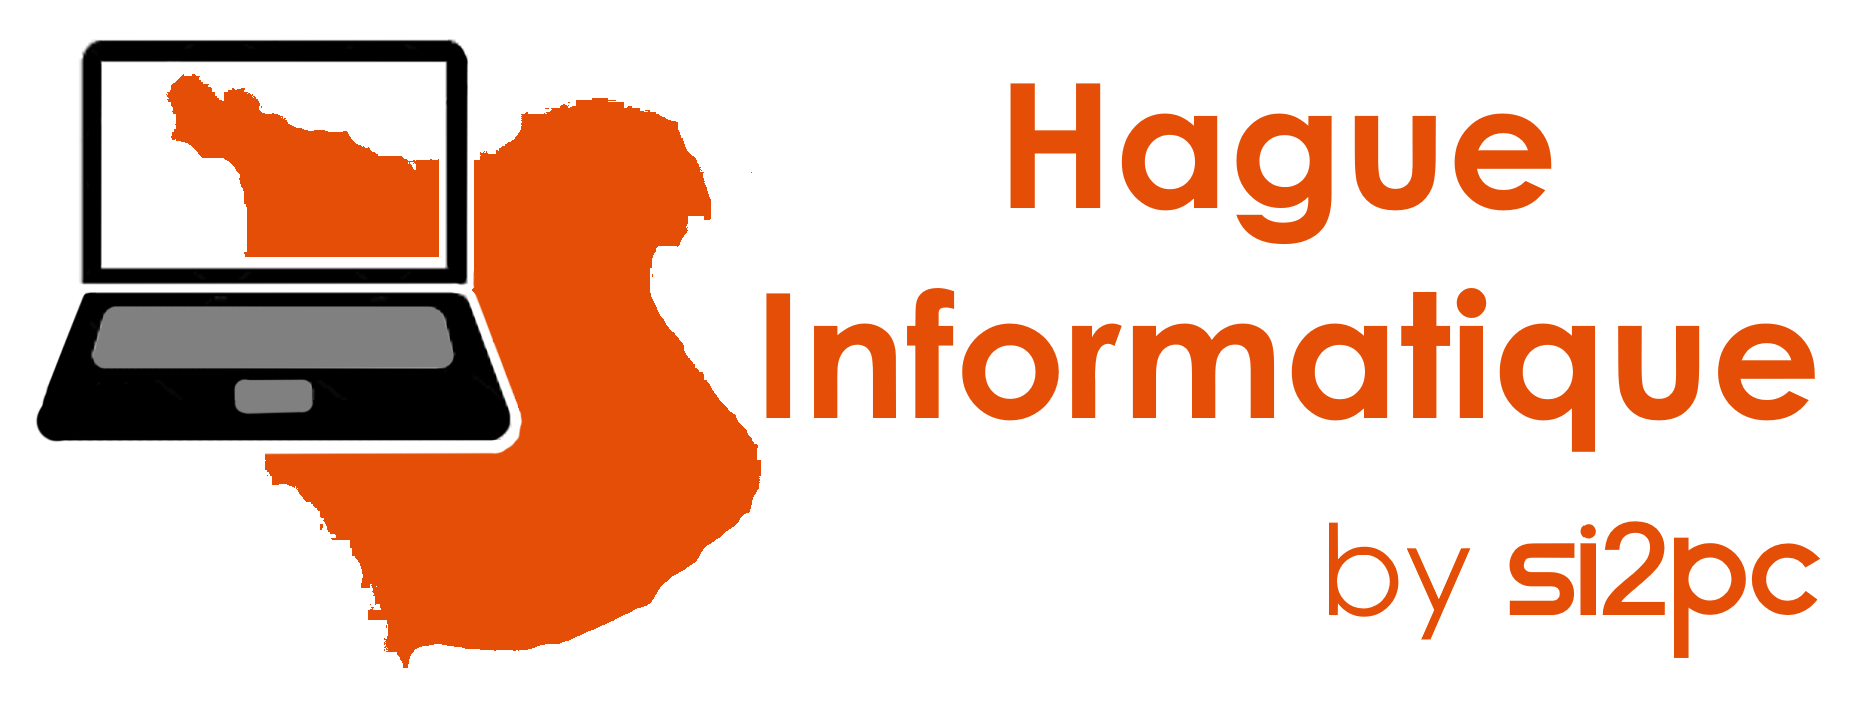 Hague Informatique (SI2PC)